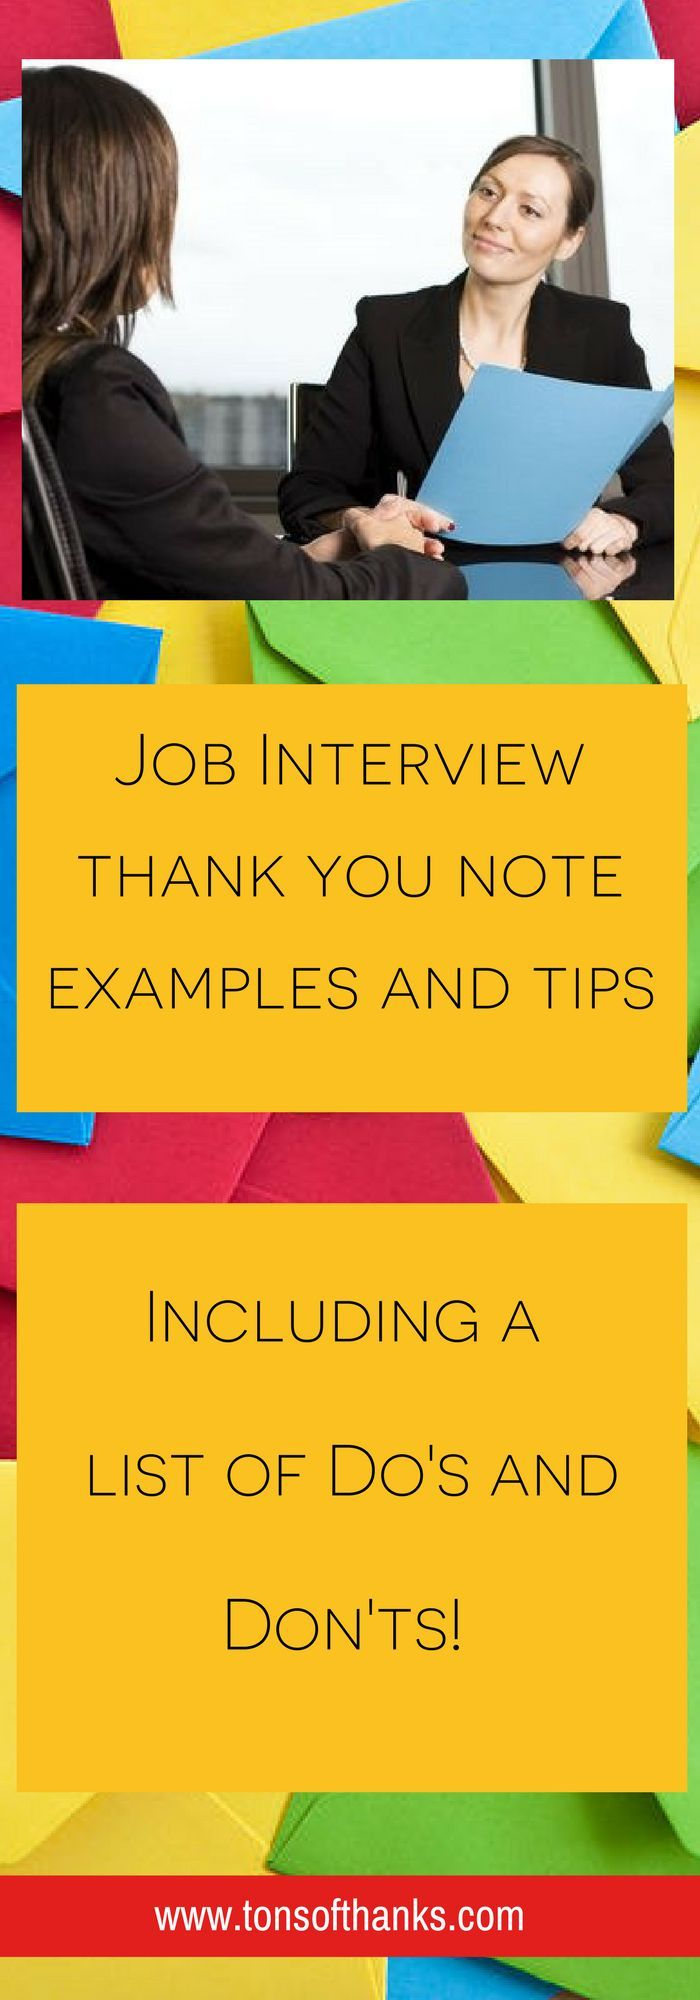 Job interview thank you note examples Also